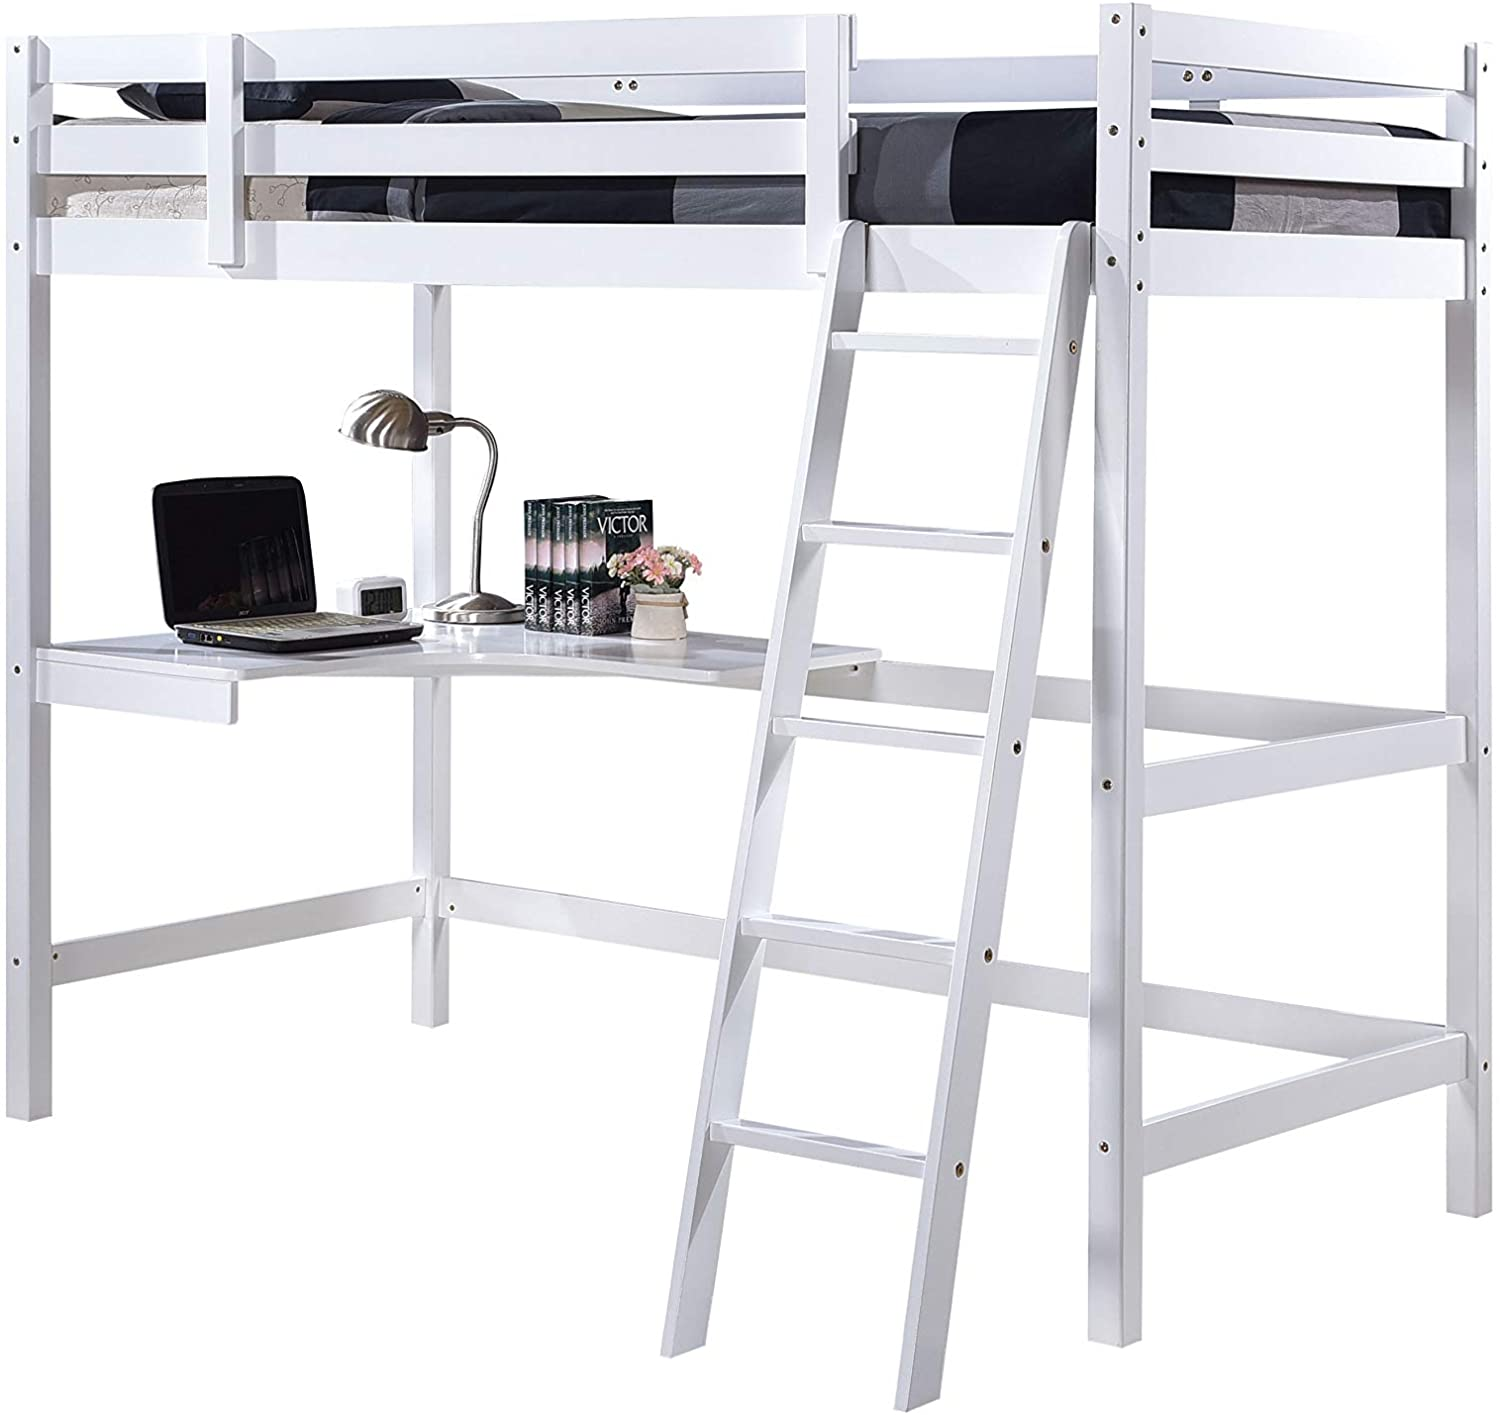 Picture of: Wooden Study Bunk Bed Stylish Single High Sleeper Kids Cabin Bed With Desk Buy Kids Bunk Beds With Stairs Childrens High Sleeper Beds Single Beds For Sale Product On Alibaba Com